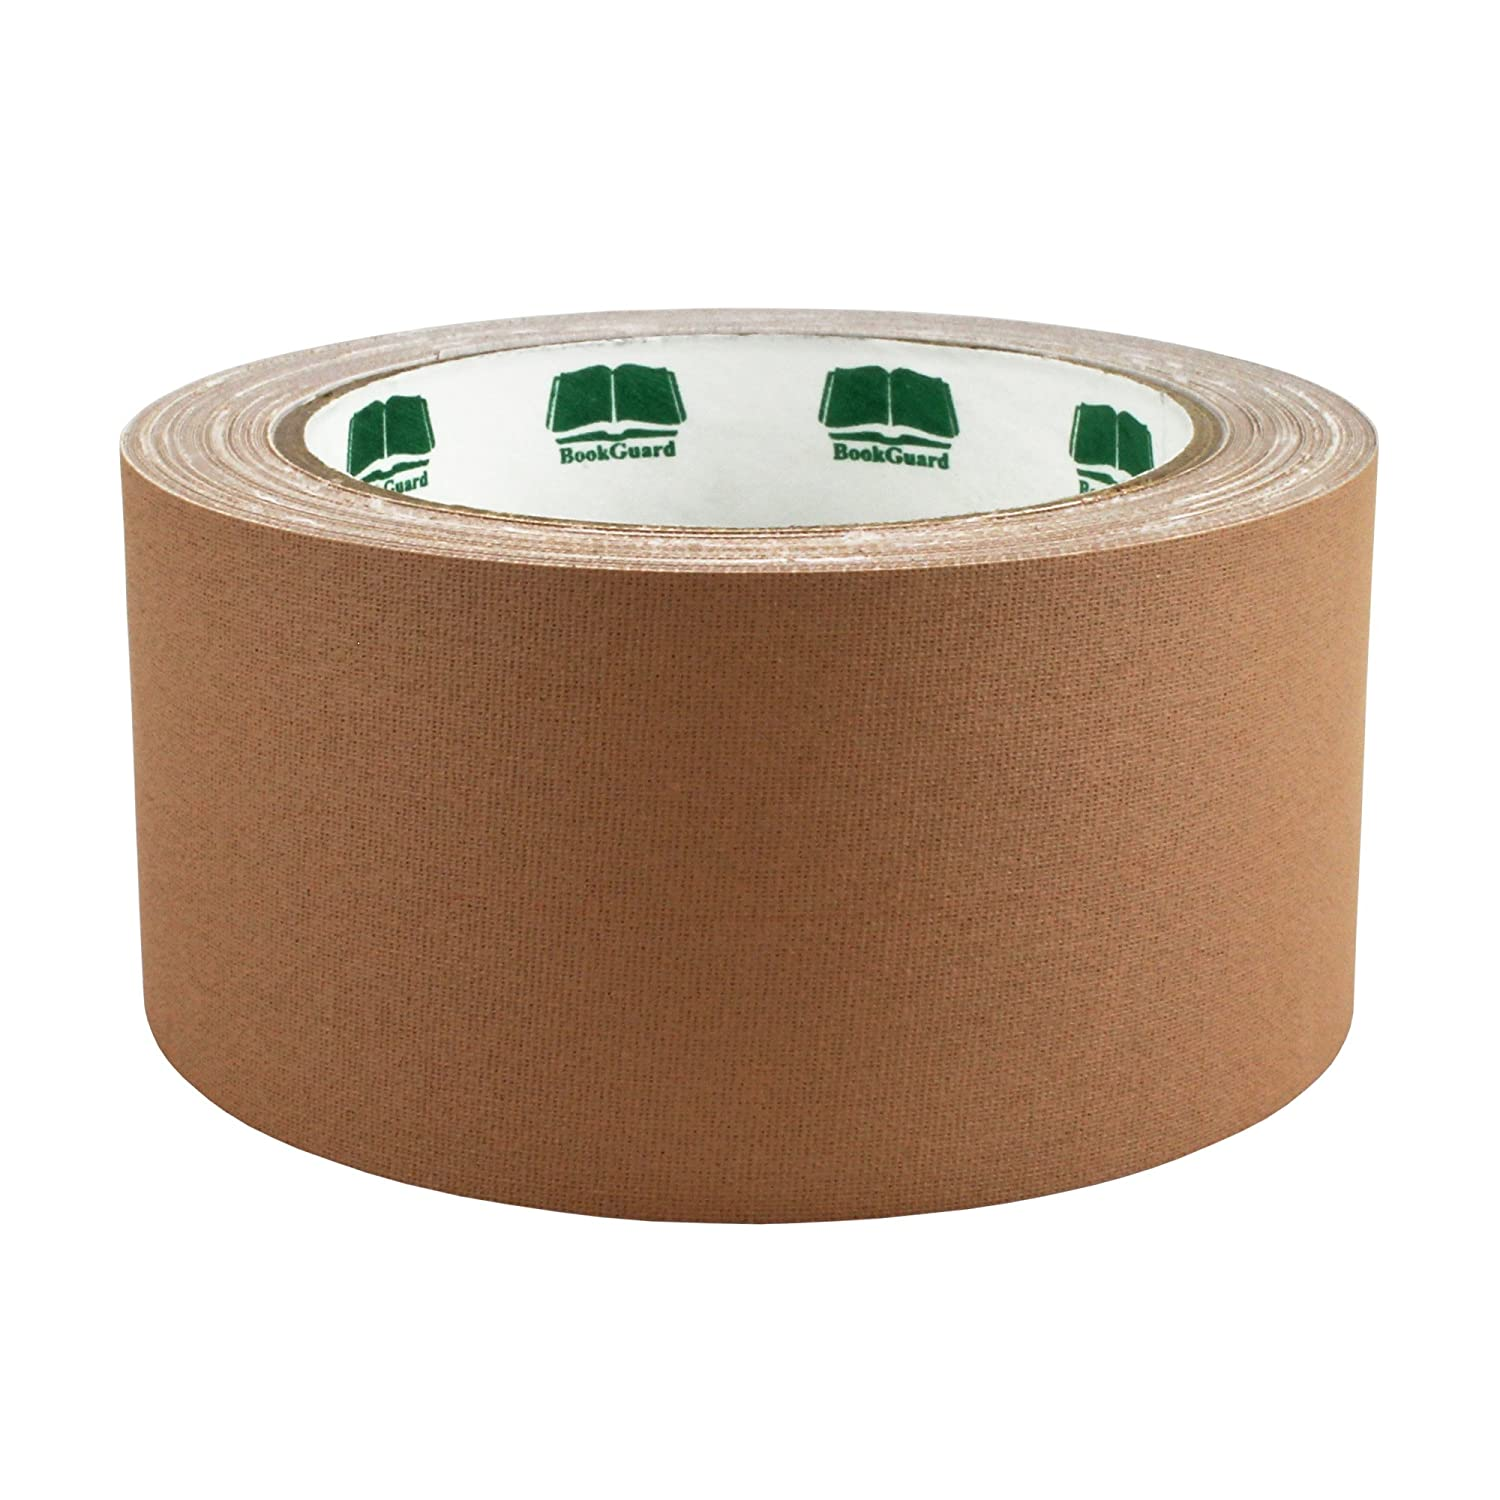 2 Forest Green Colored Premium-Cloth Book Binding Repair Tape | 15 Yard Roll (BookGuard Brand) ChromaLabel ACAL01354